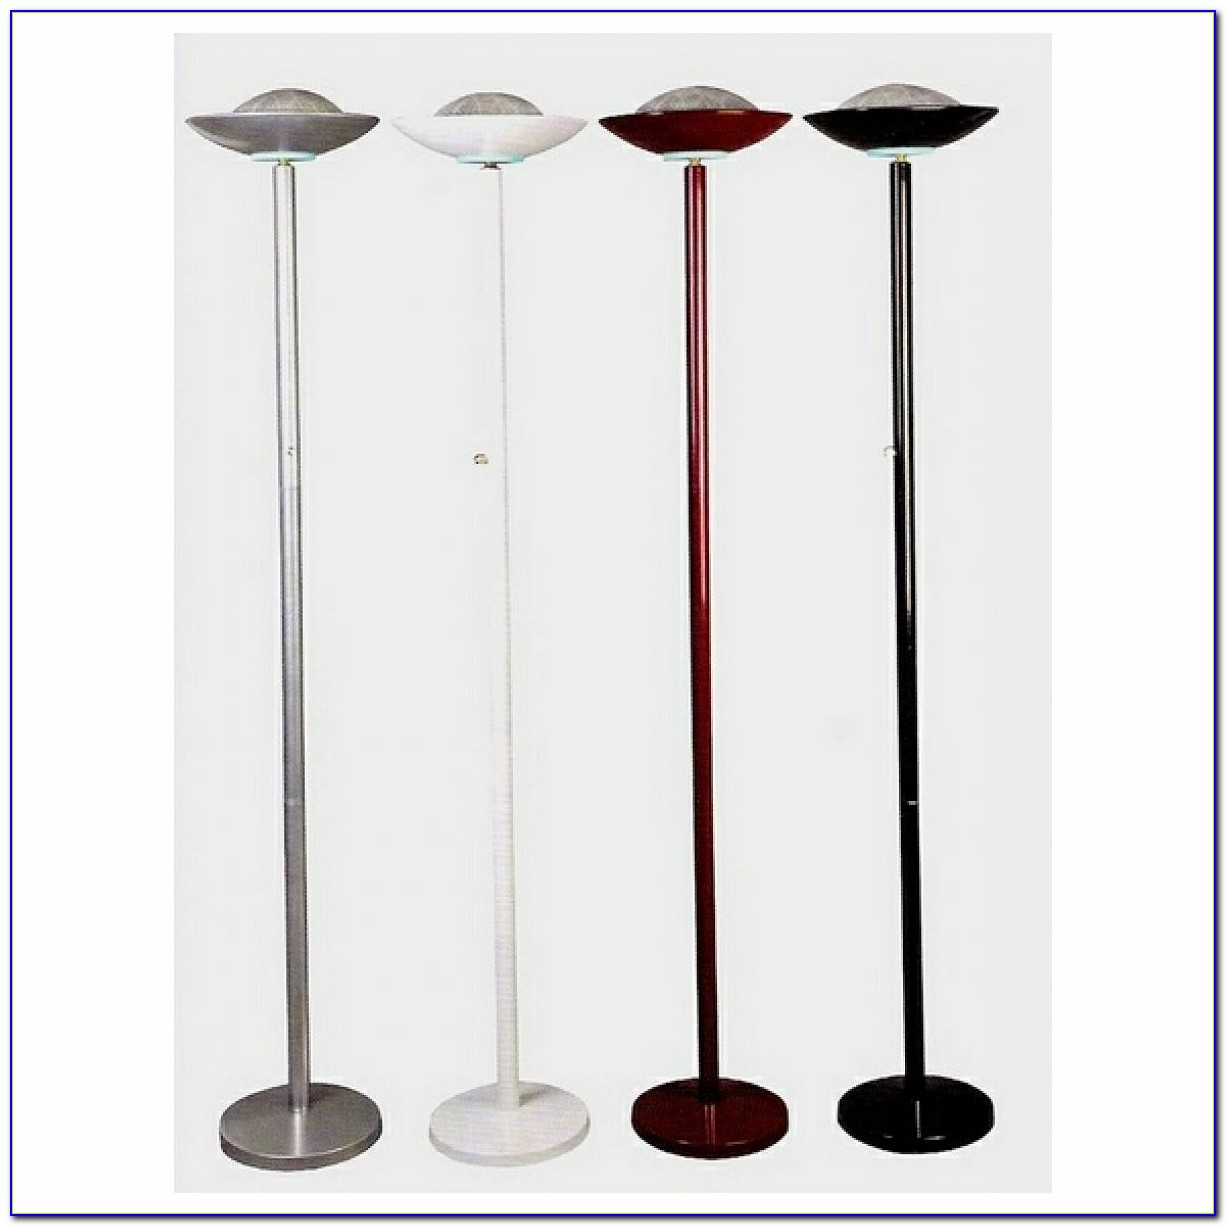 Torchiere Floor Lamp With Dimmer Switch